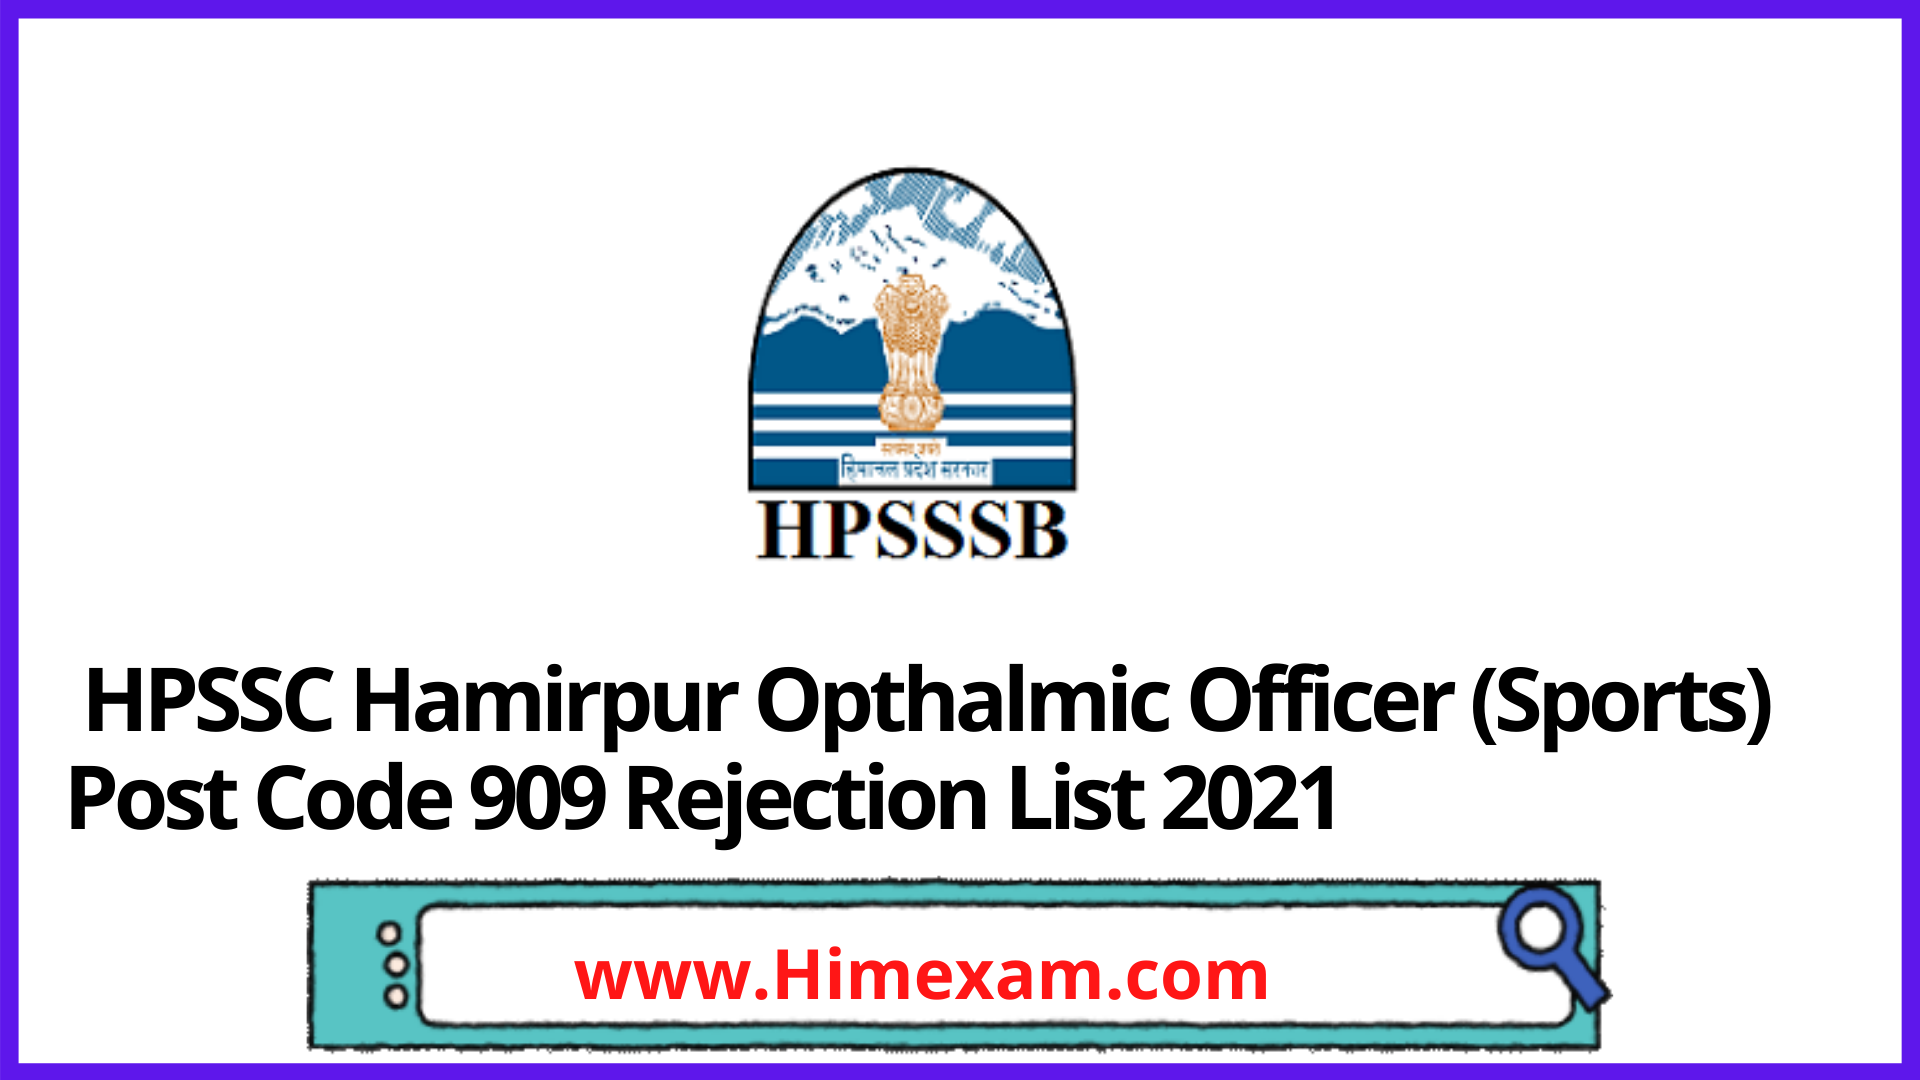 HPSSC Hamirpur Opthalmic Officer (Sports) Post Code 909 Rejection List 2021